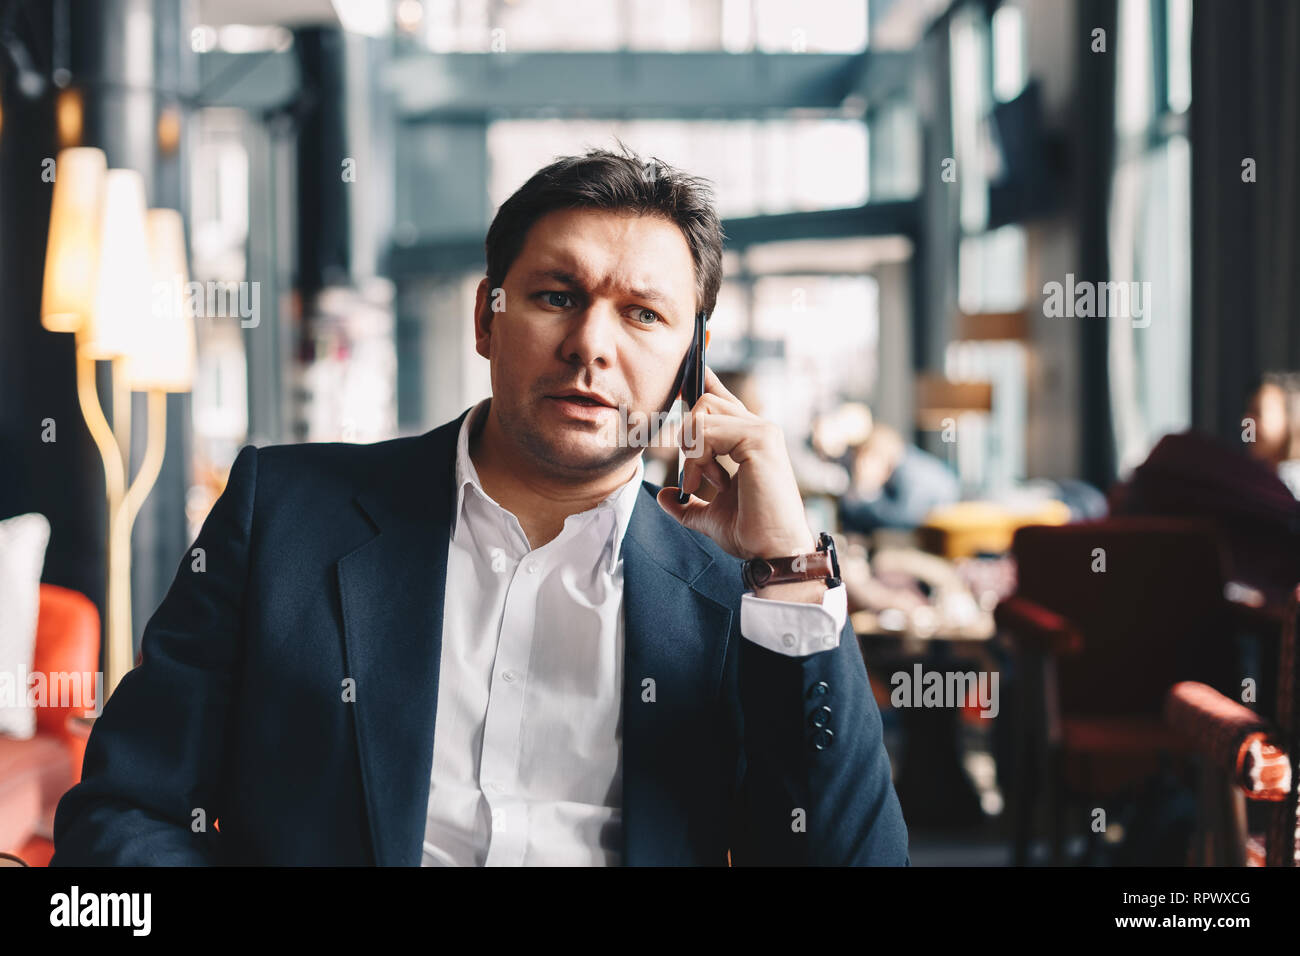 Handsome young businessman in his thirties sitting in a cafe bar during a break from work, talking finance by using a mobile phone. Concept of working - Stock Image